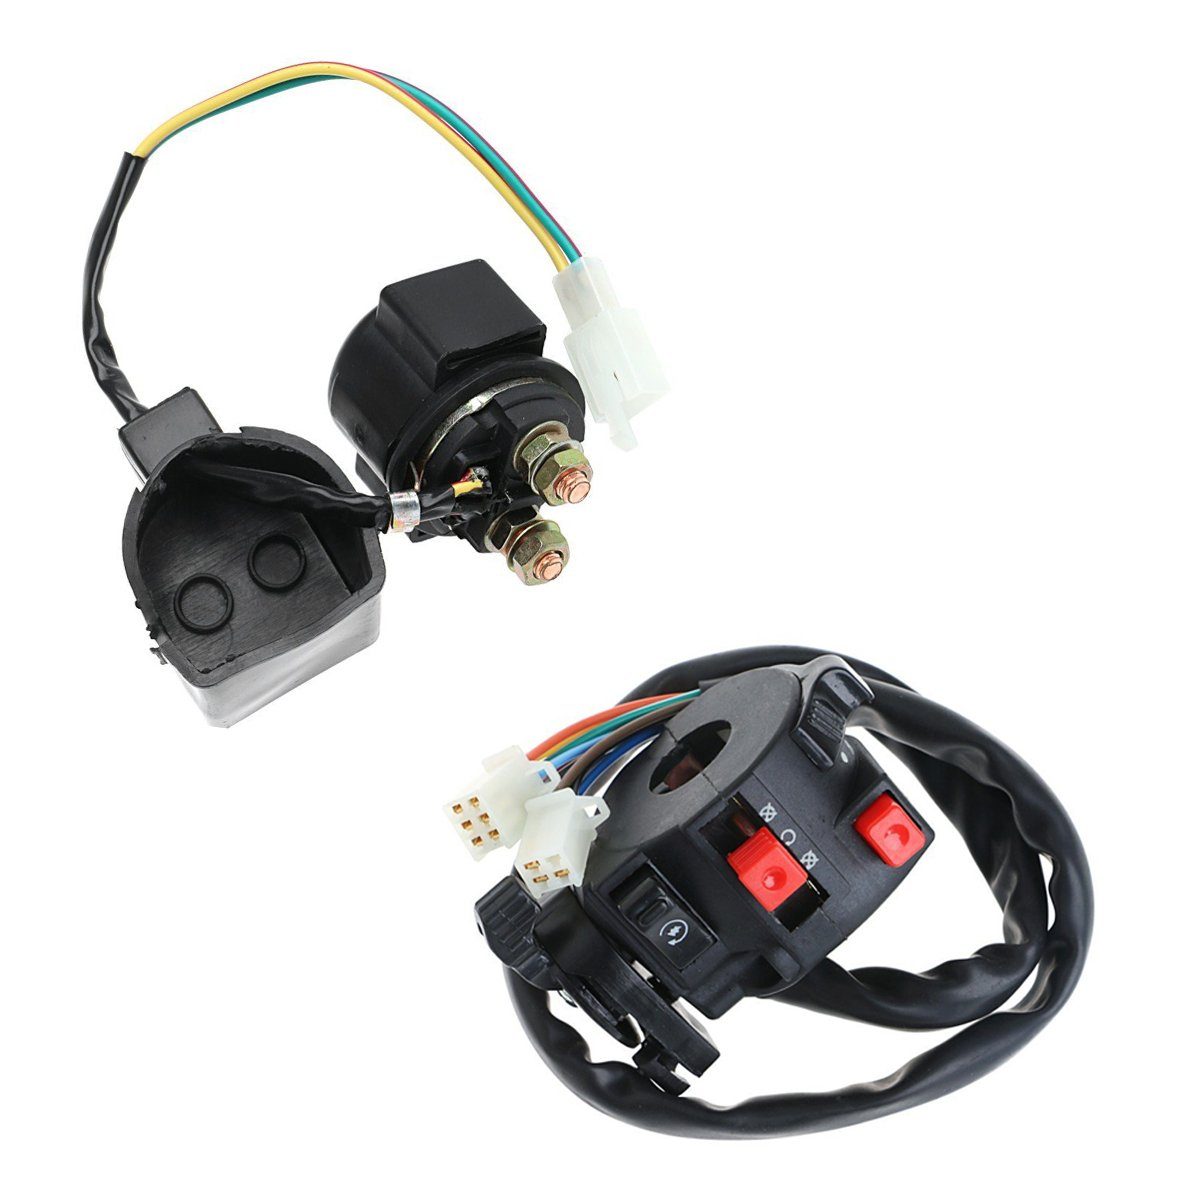 Annpee Complete Electrics Wiring Harness Wire Loom Magneto Stator Pit Bike For Gy6 4 Stroke Engine Type